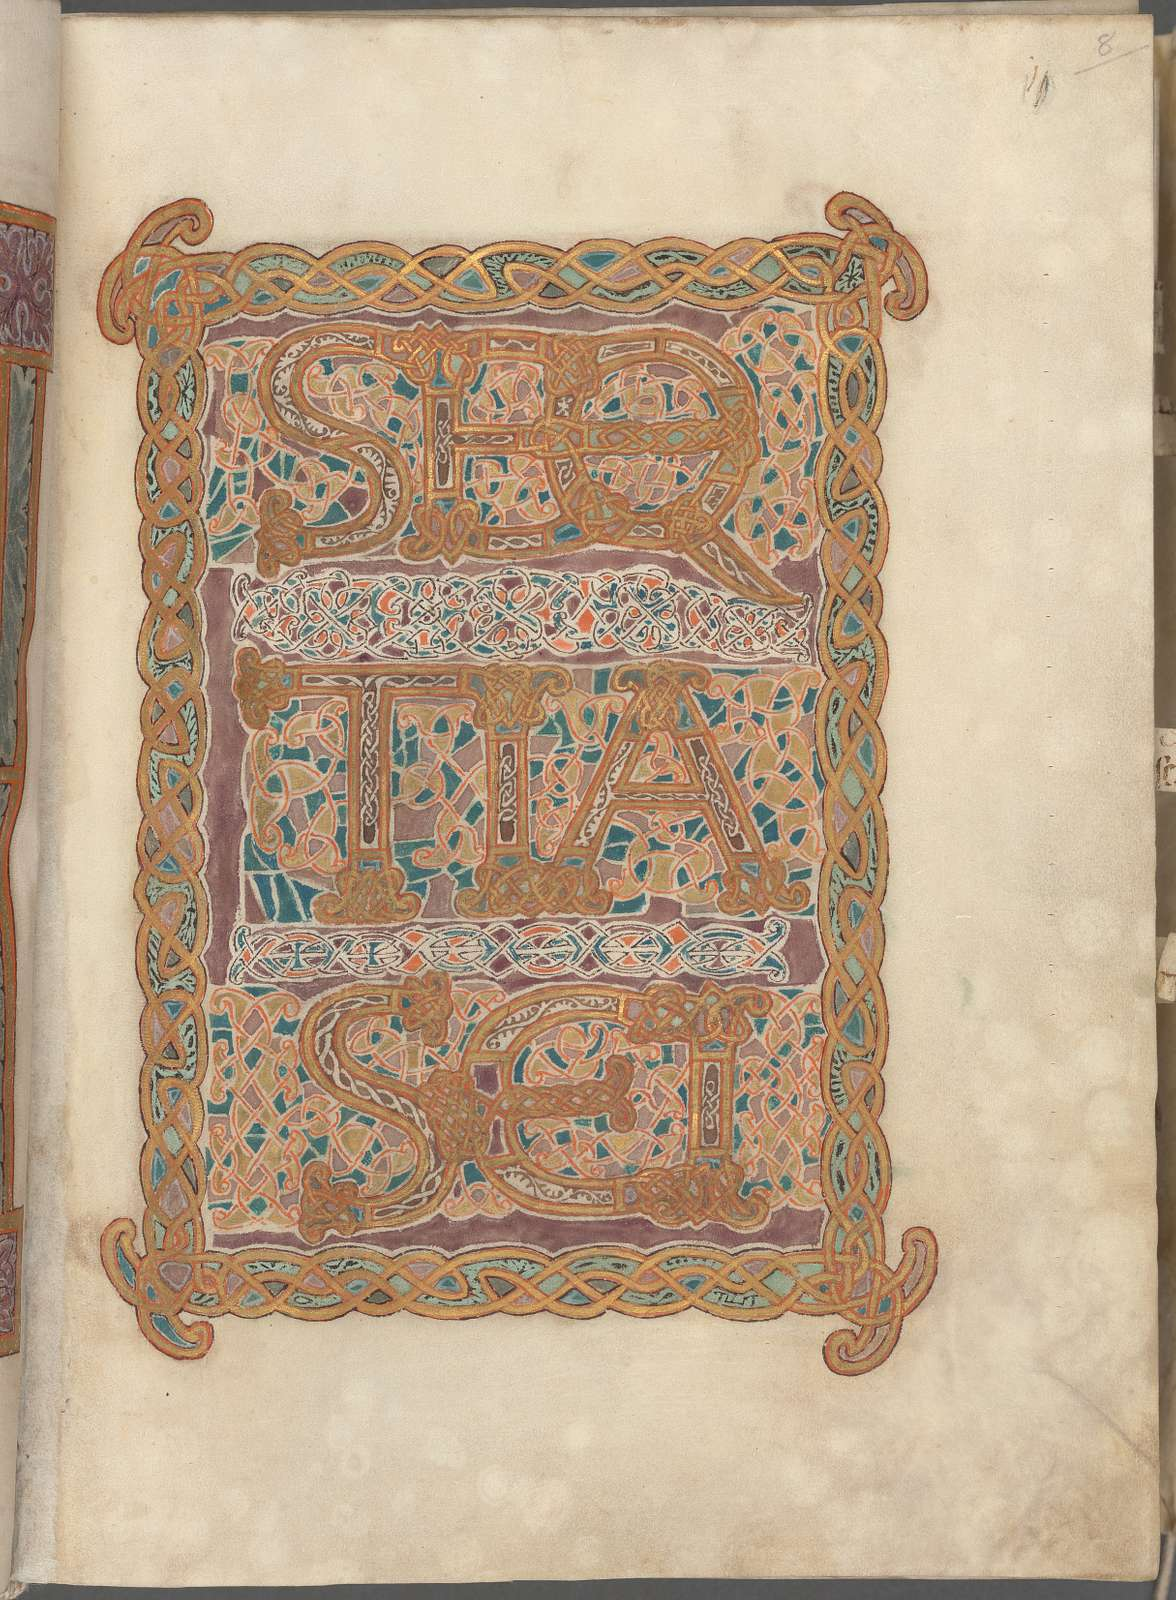 Elaborate text page in gold, purple and green:  Sequentia sancti